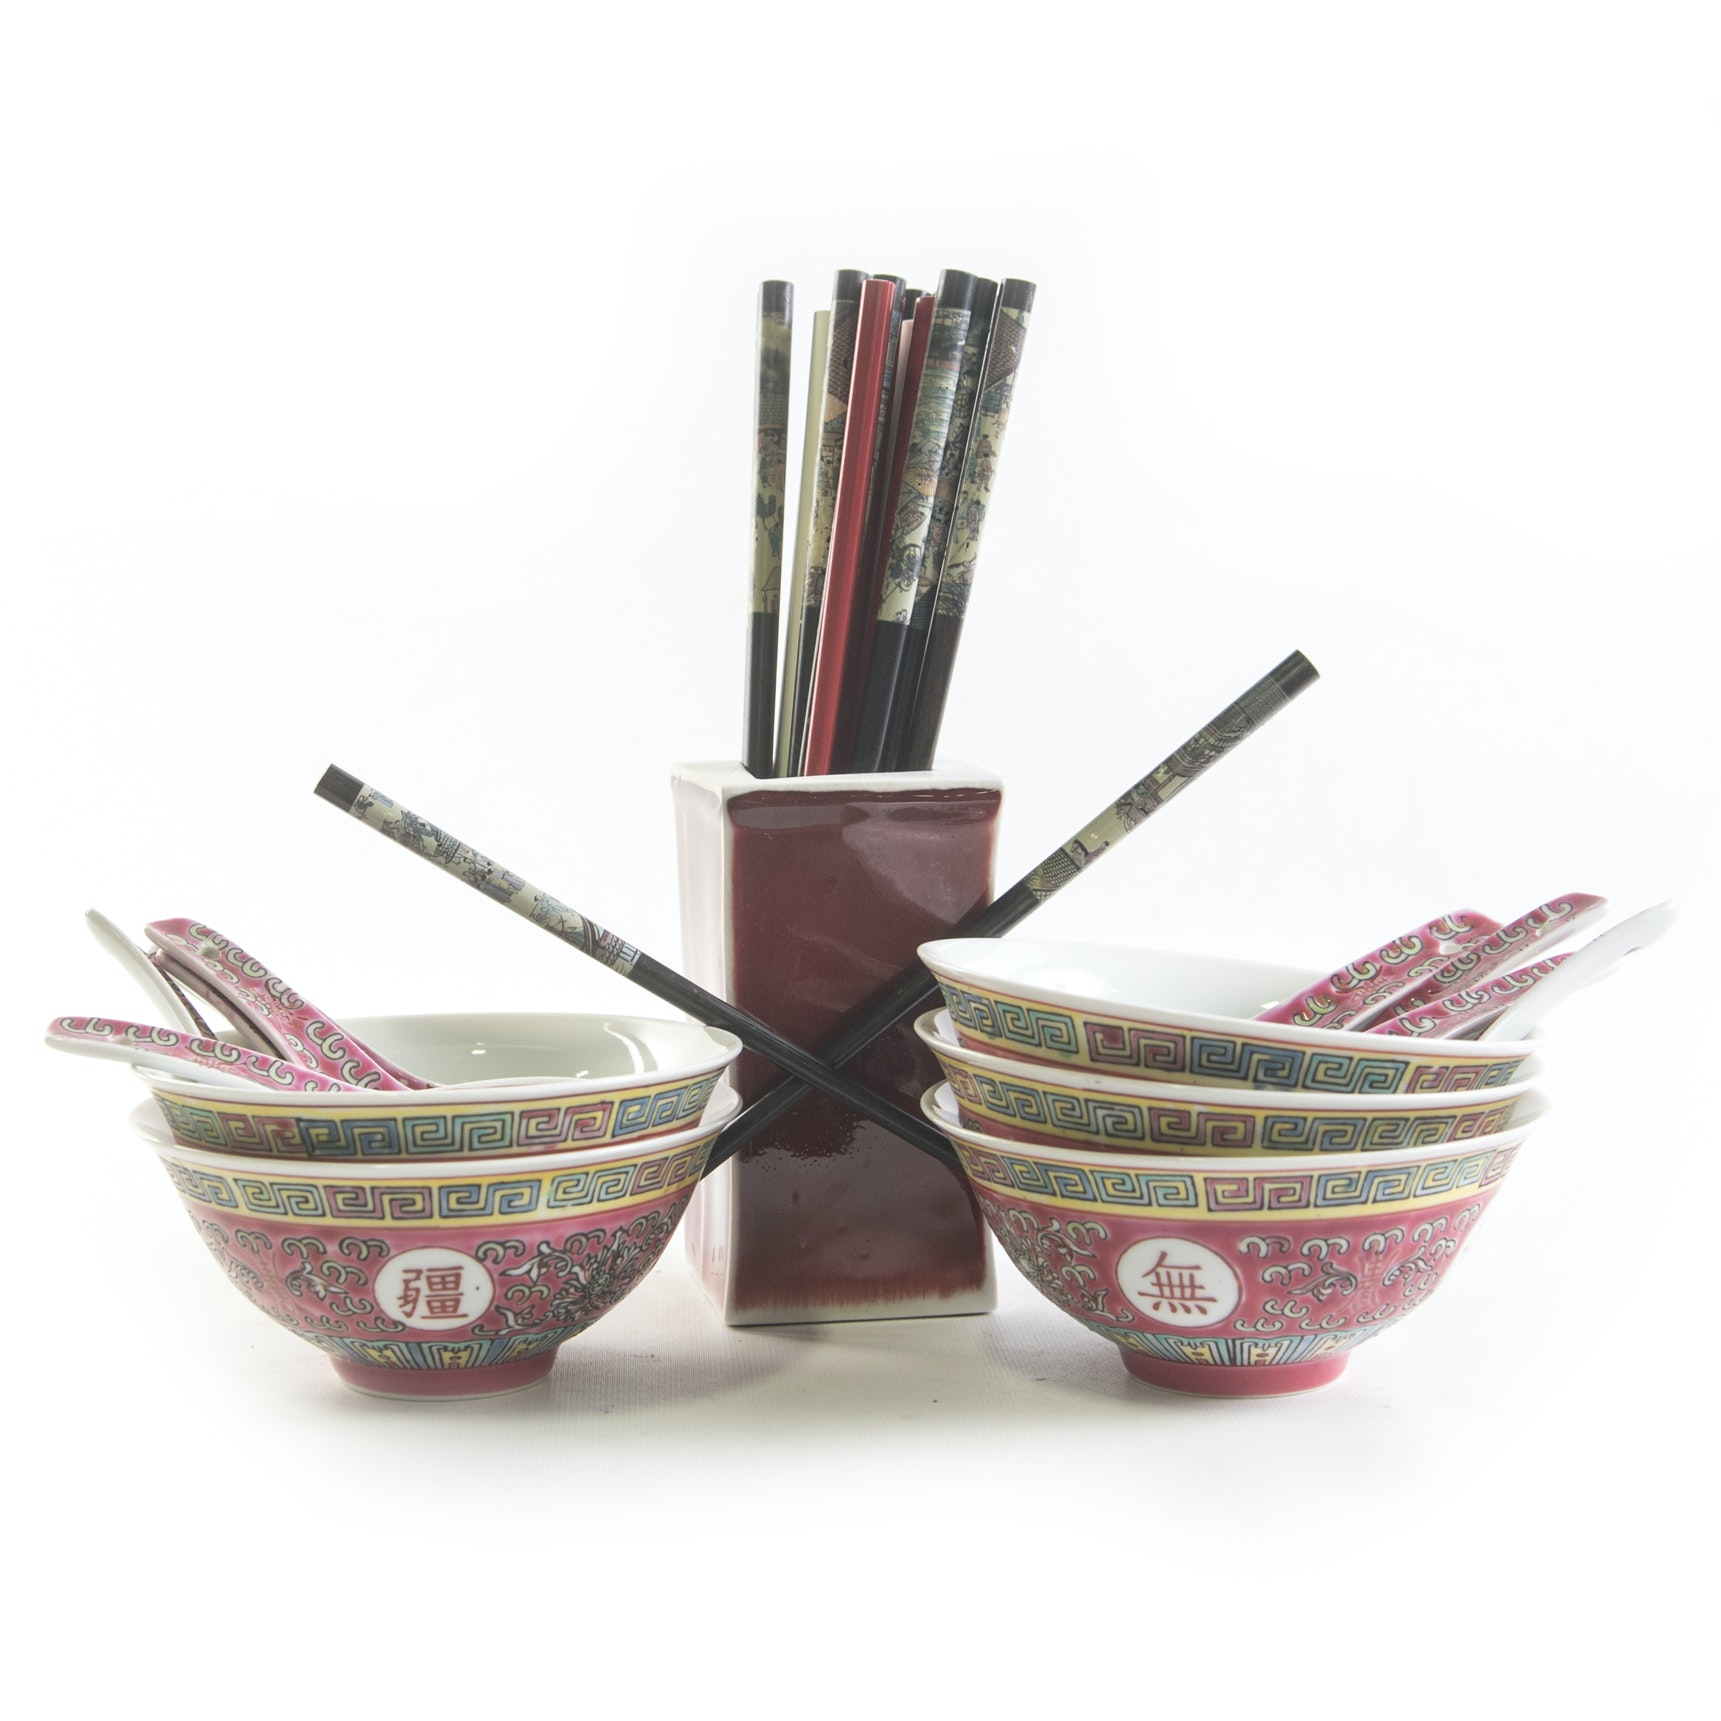 Chinese Ceramic Bowls, Spoons, and an Assortment of Chopsticks